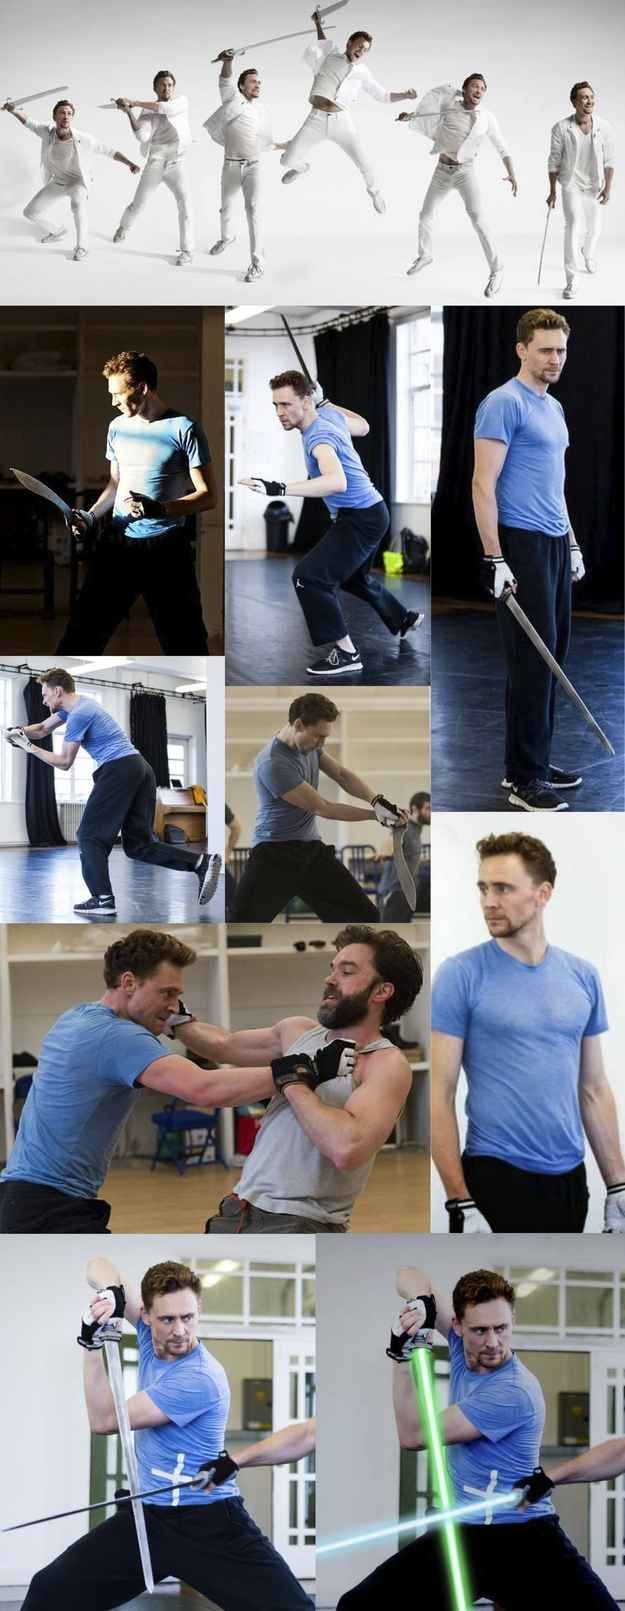 Tom Sword Fighting Is Heaven On Earth | This Post Will Destroy Your Life - Tom Hiddleston